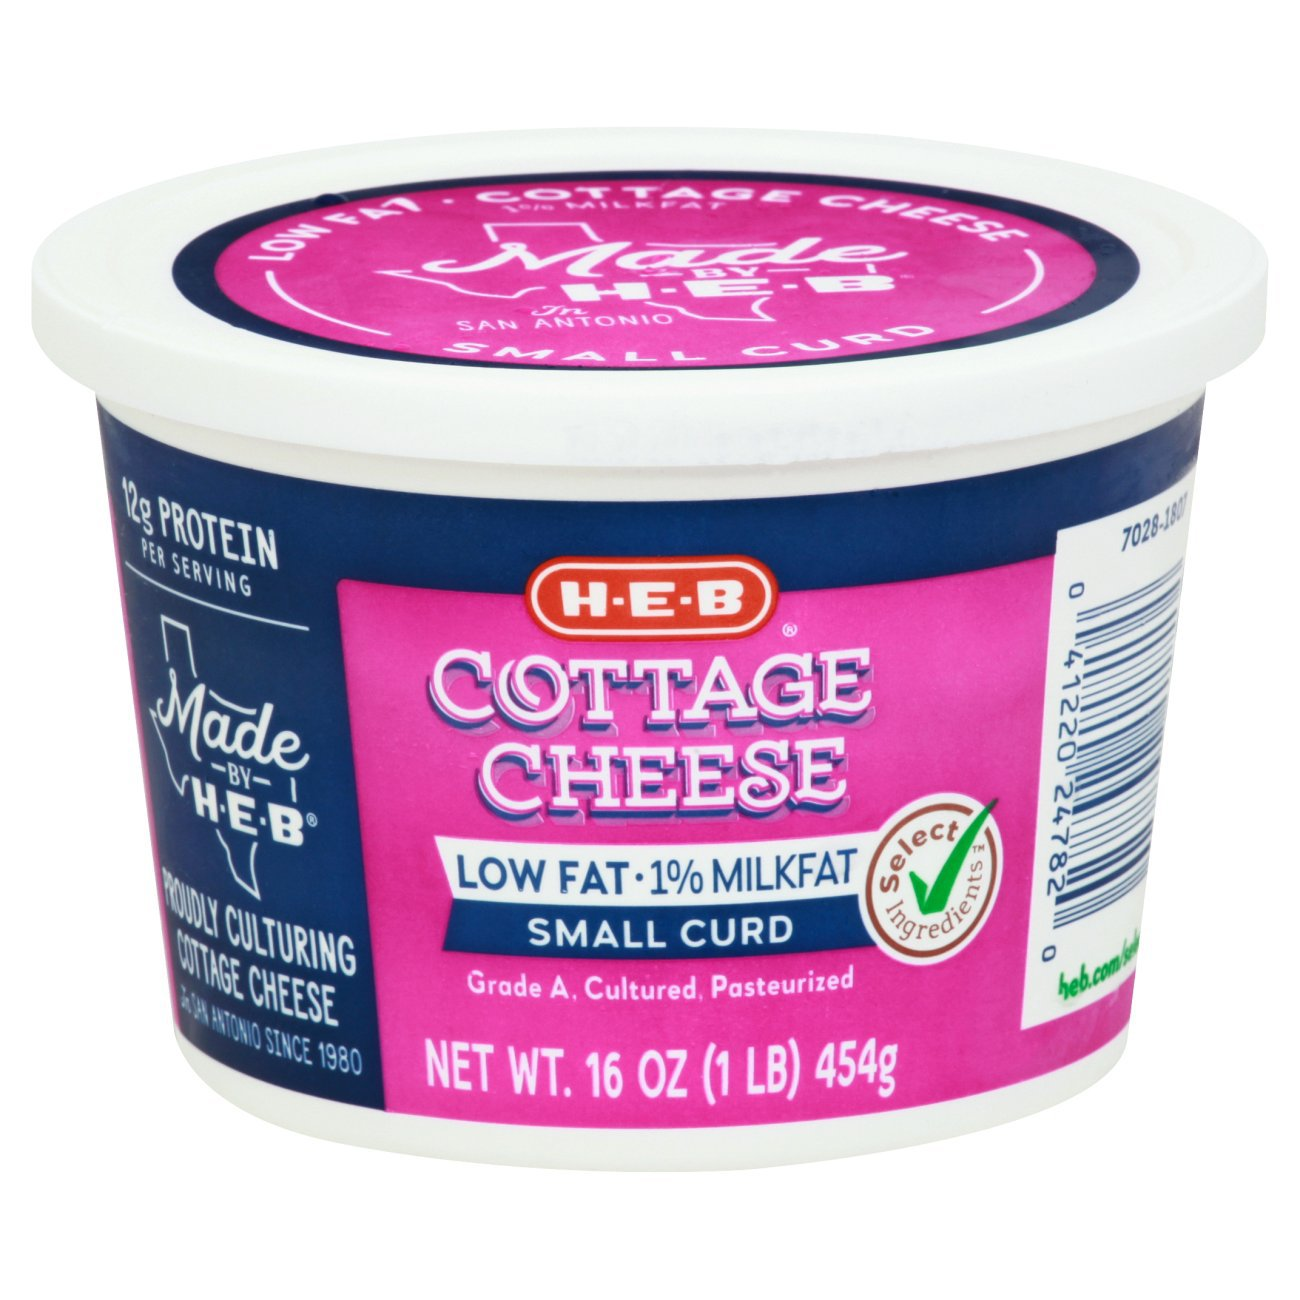 Hu2011Eu2011B Low Fat 1% Milkfat Cottage Cheese U2011 Shop Cottage Cheese At HEB